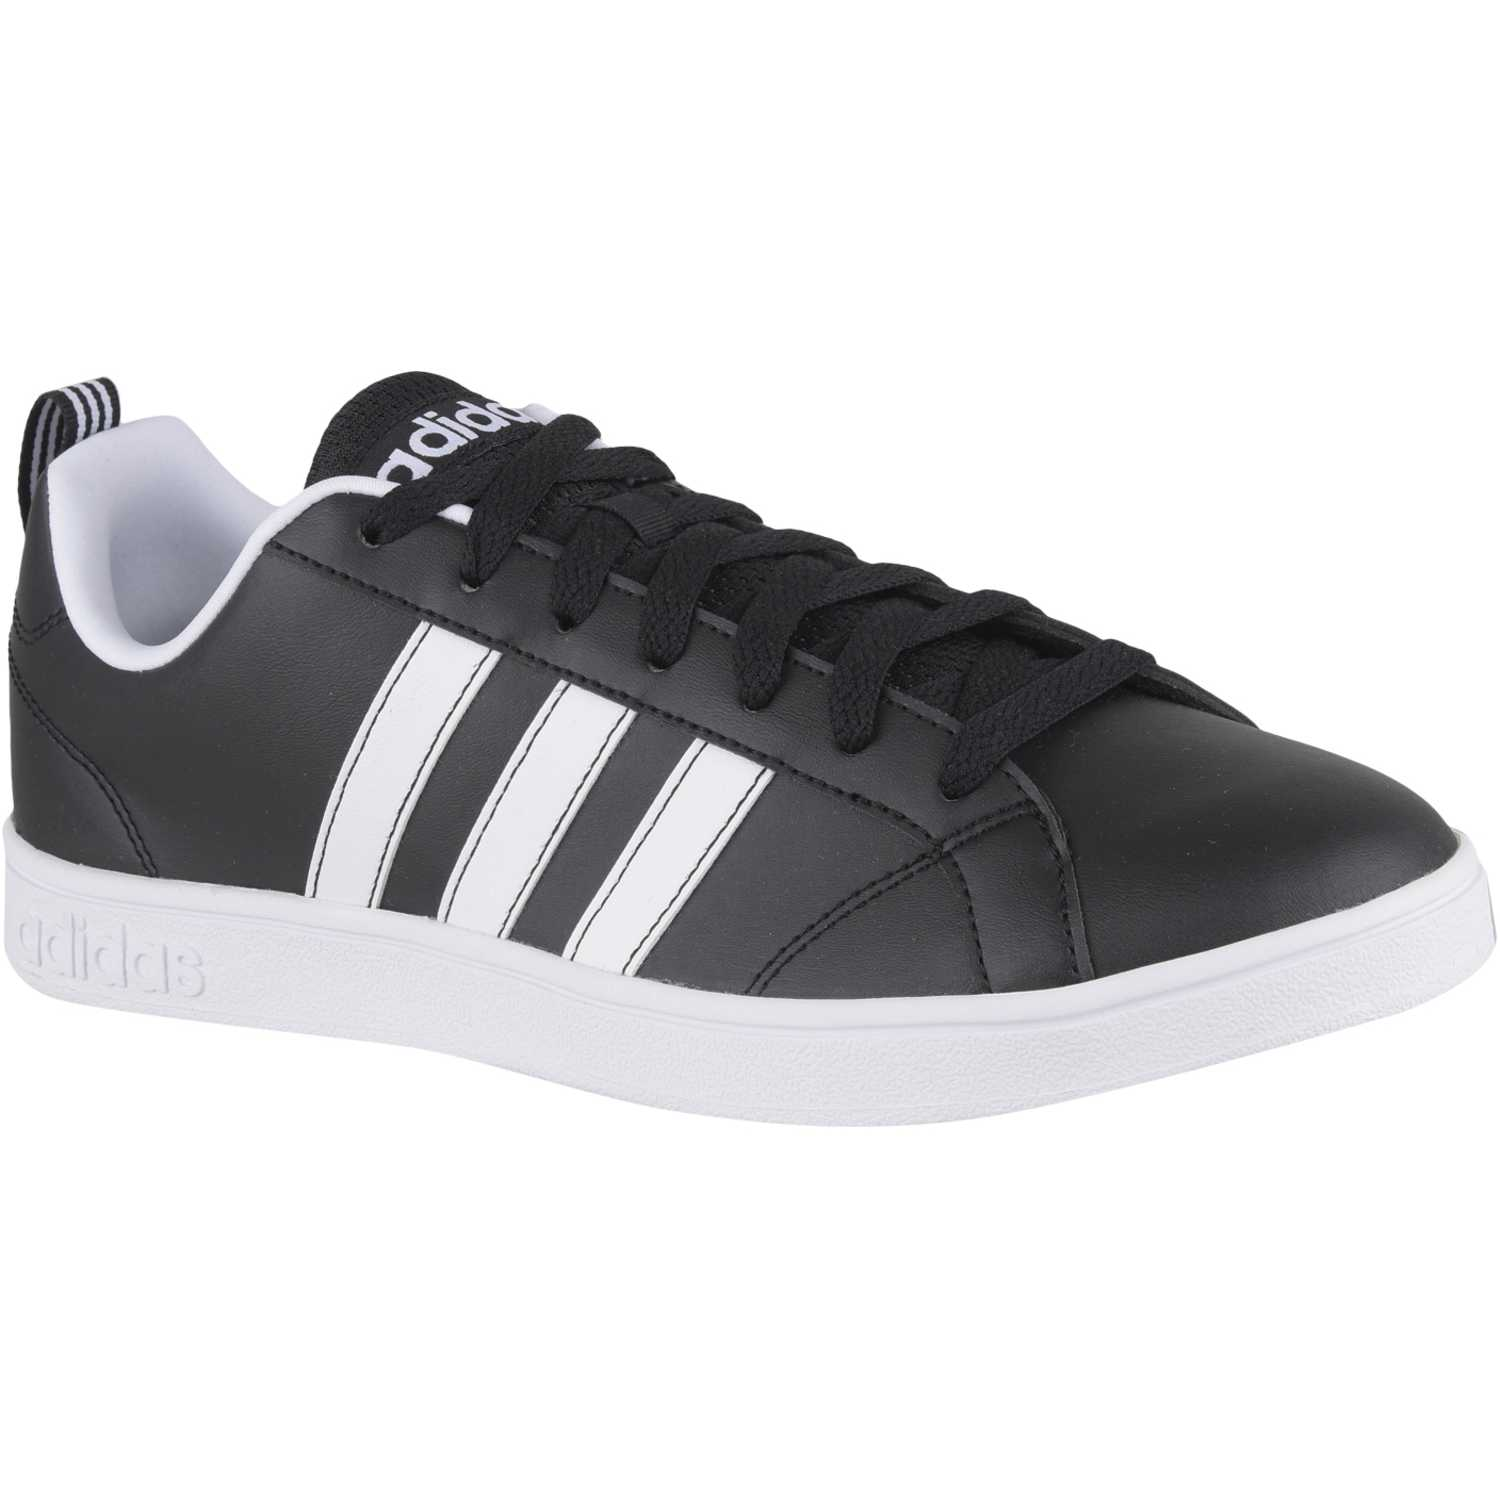 reputable site e6a5a de9d5 adidas NEO Negro  blanco de Hombre modelo vs advantage Urban Casual  Deportivo Walking Zapatillas